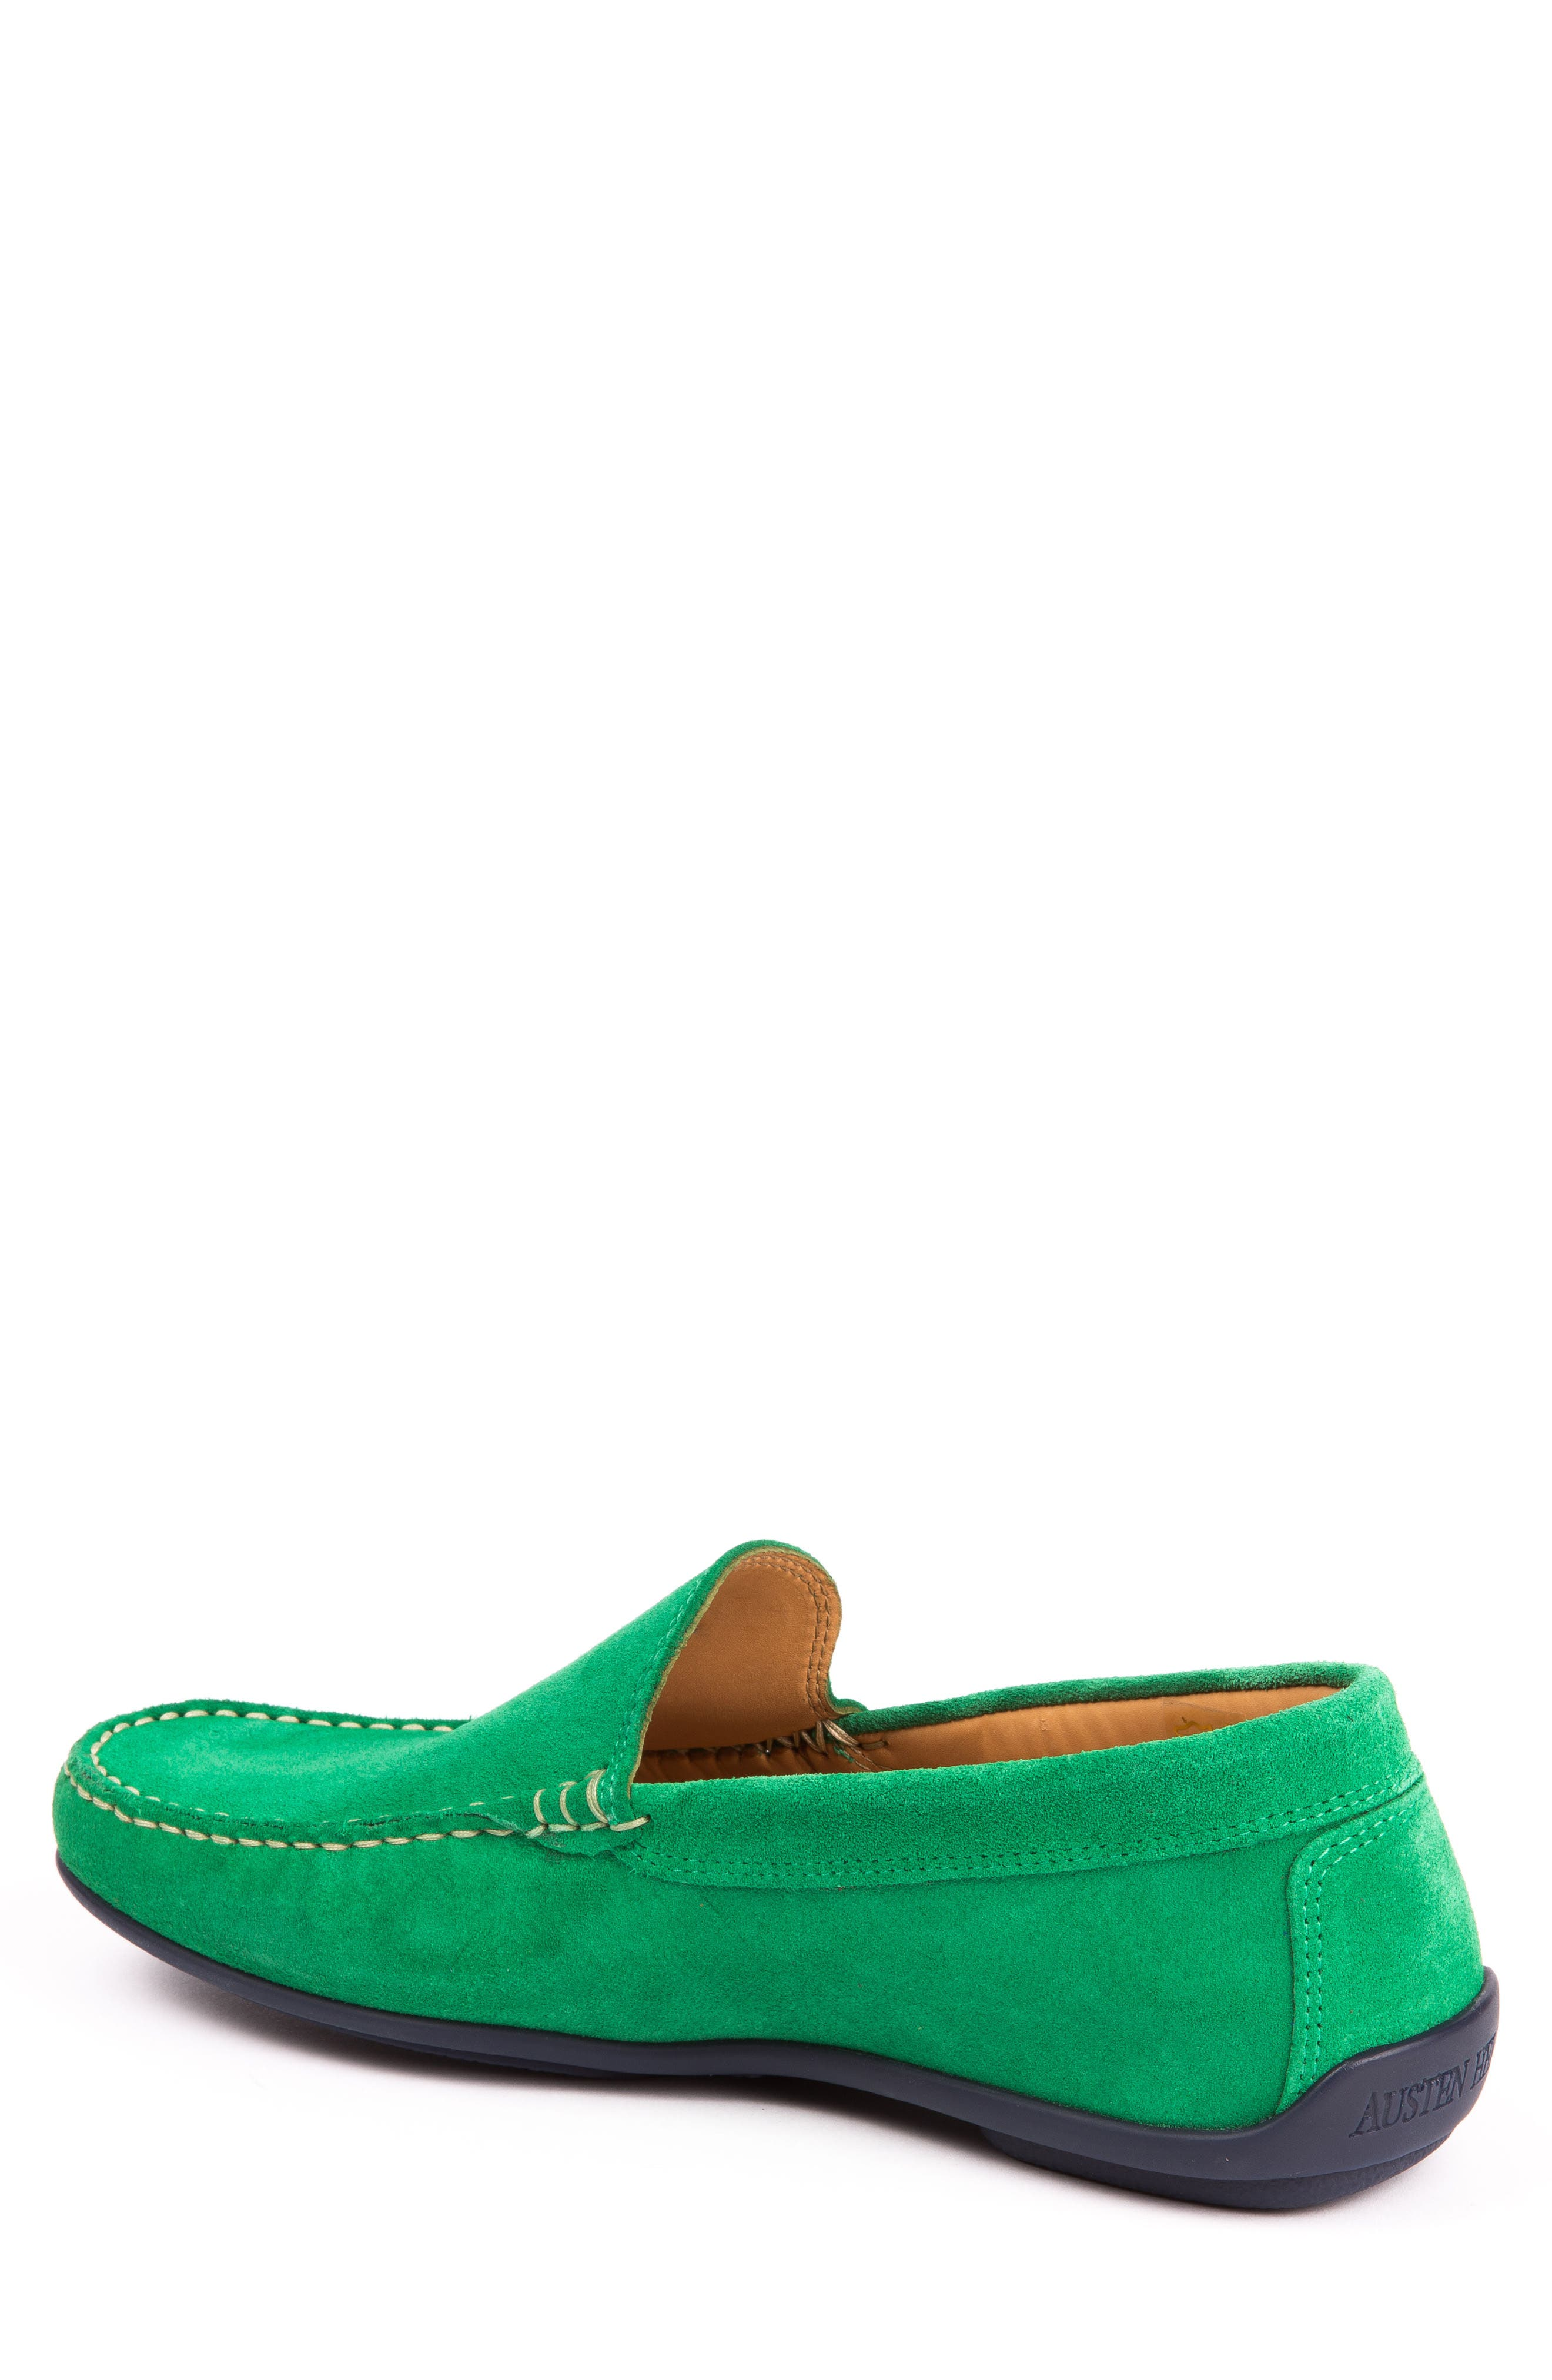 Fairways Driving Shoe,                             Alternate thumbnail 2, color,                             Green Suede